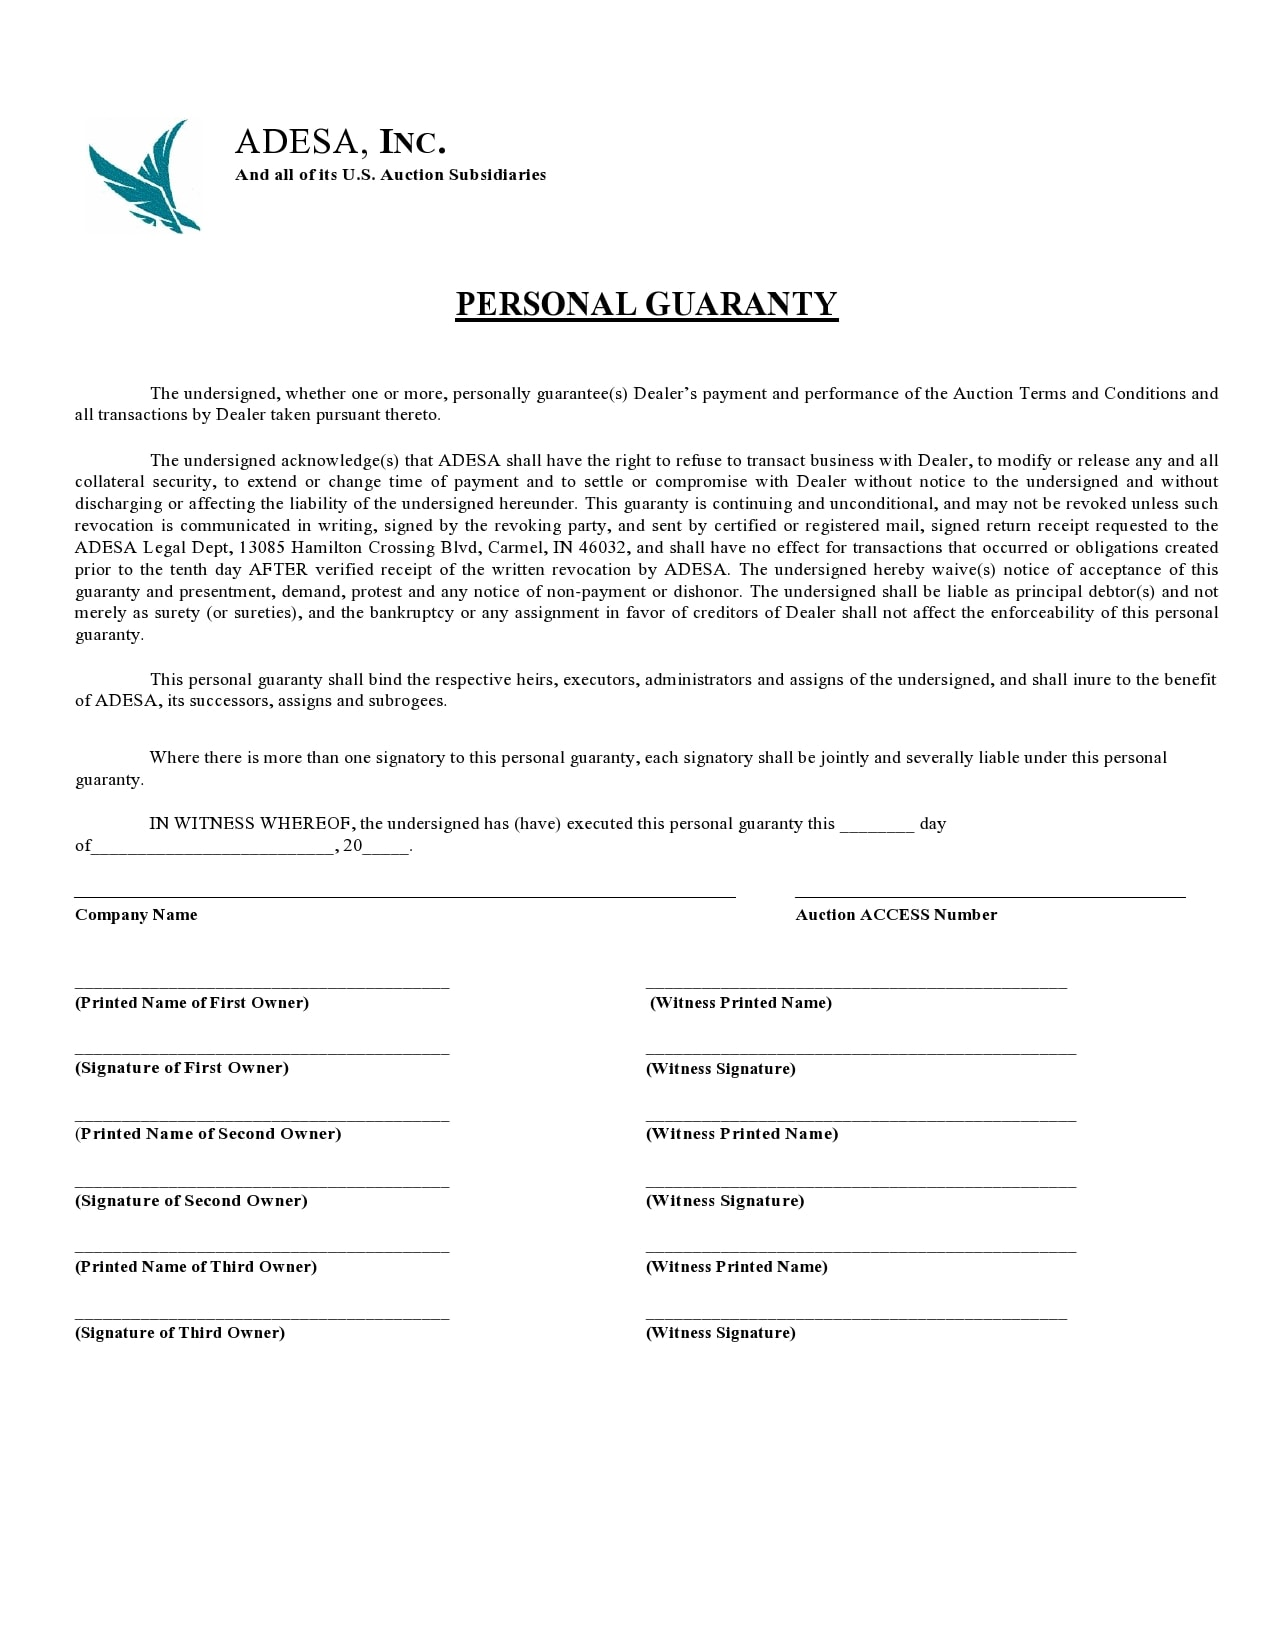 personal guarantee form 01